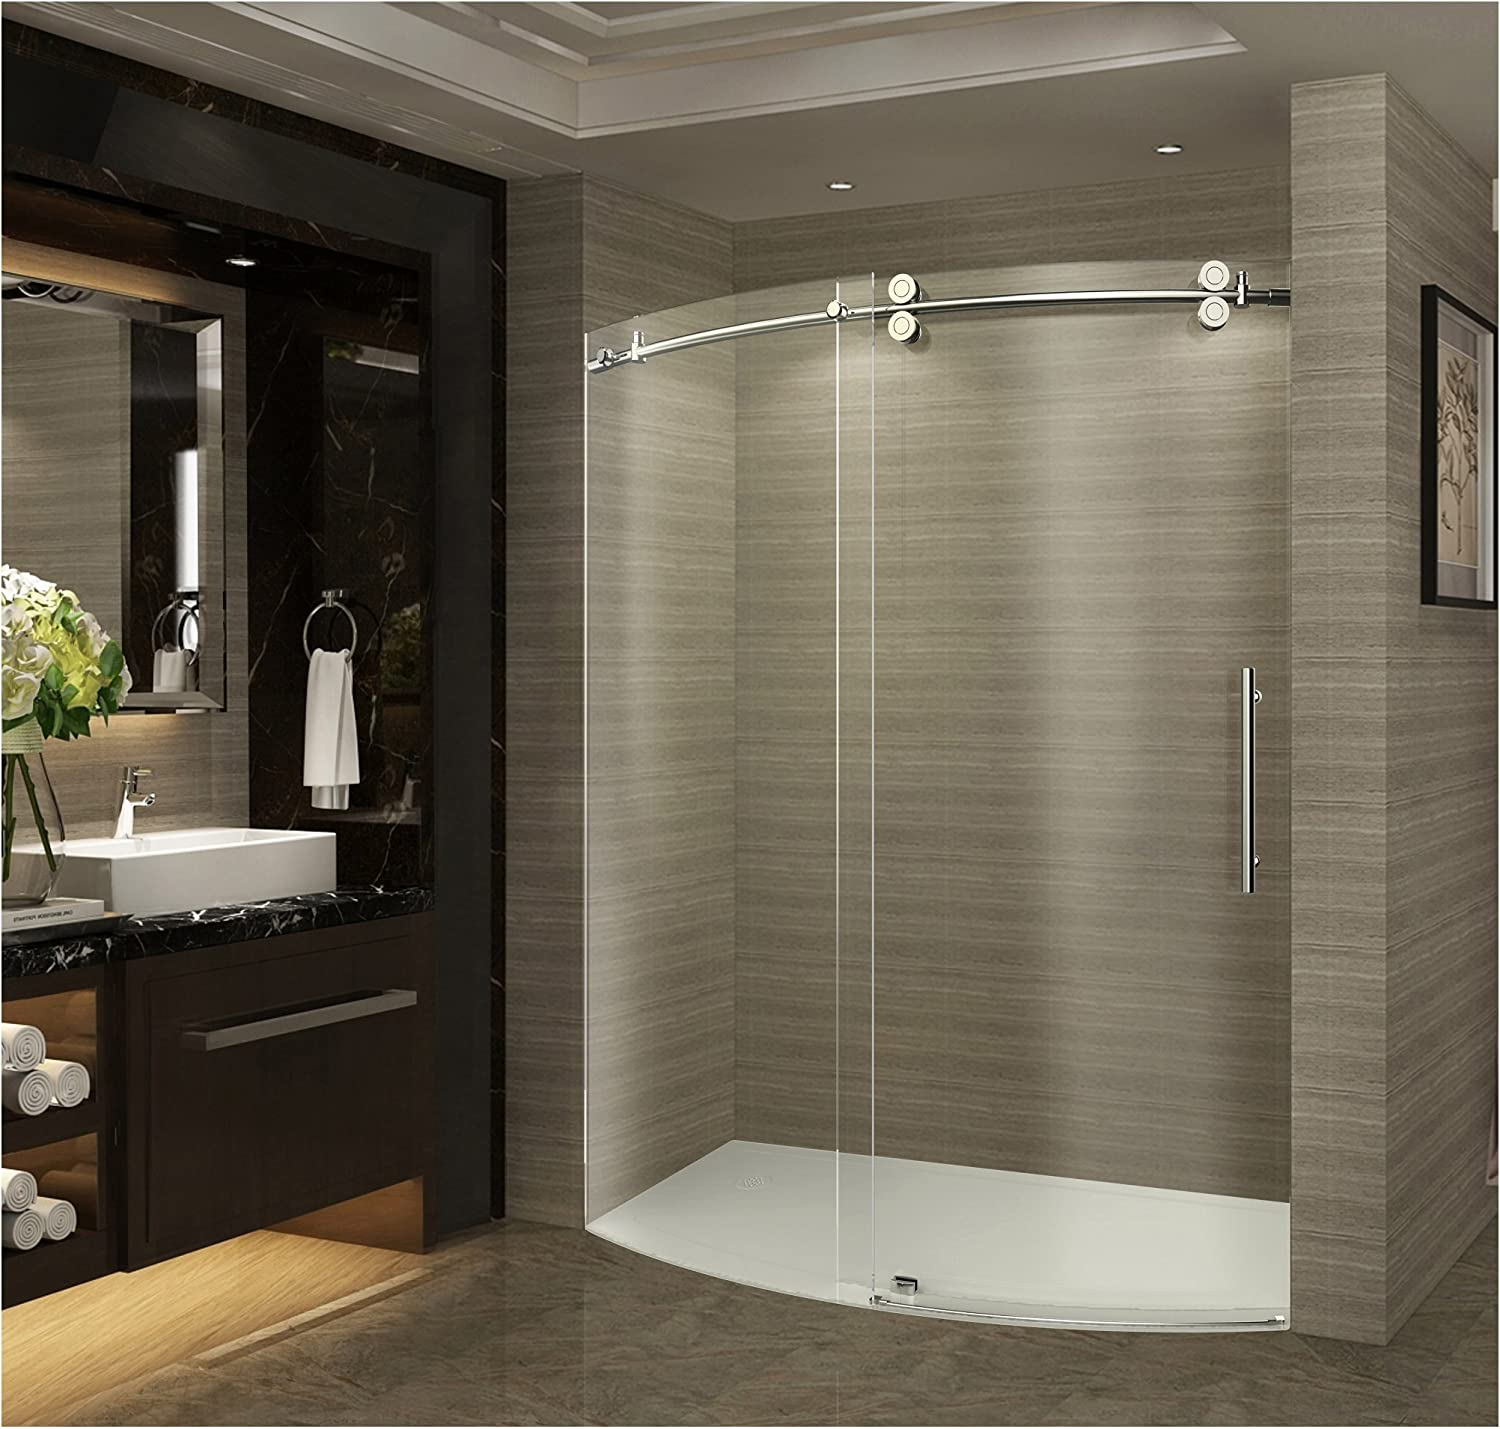 Aston Zenarch 60 X 75 Completely Frameless Bowfront Sliding Shower Door With Right Opening Polished Chrome Amazon Com